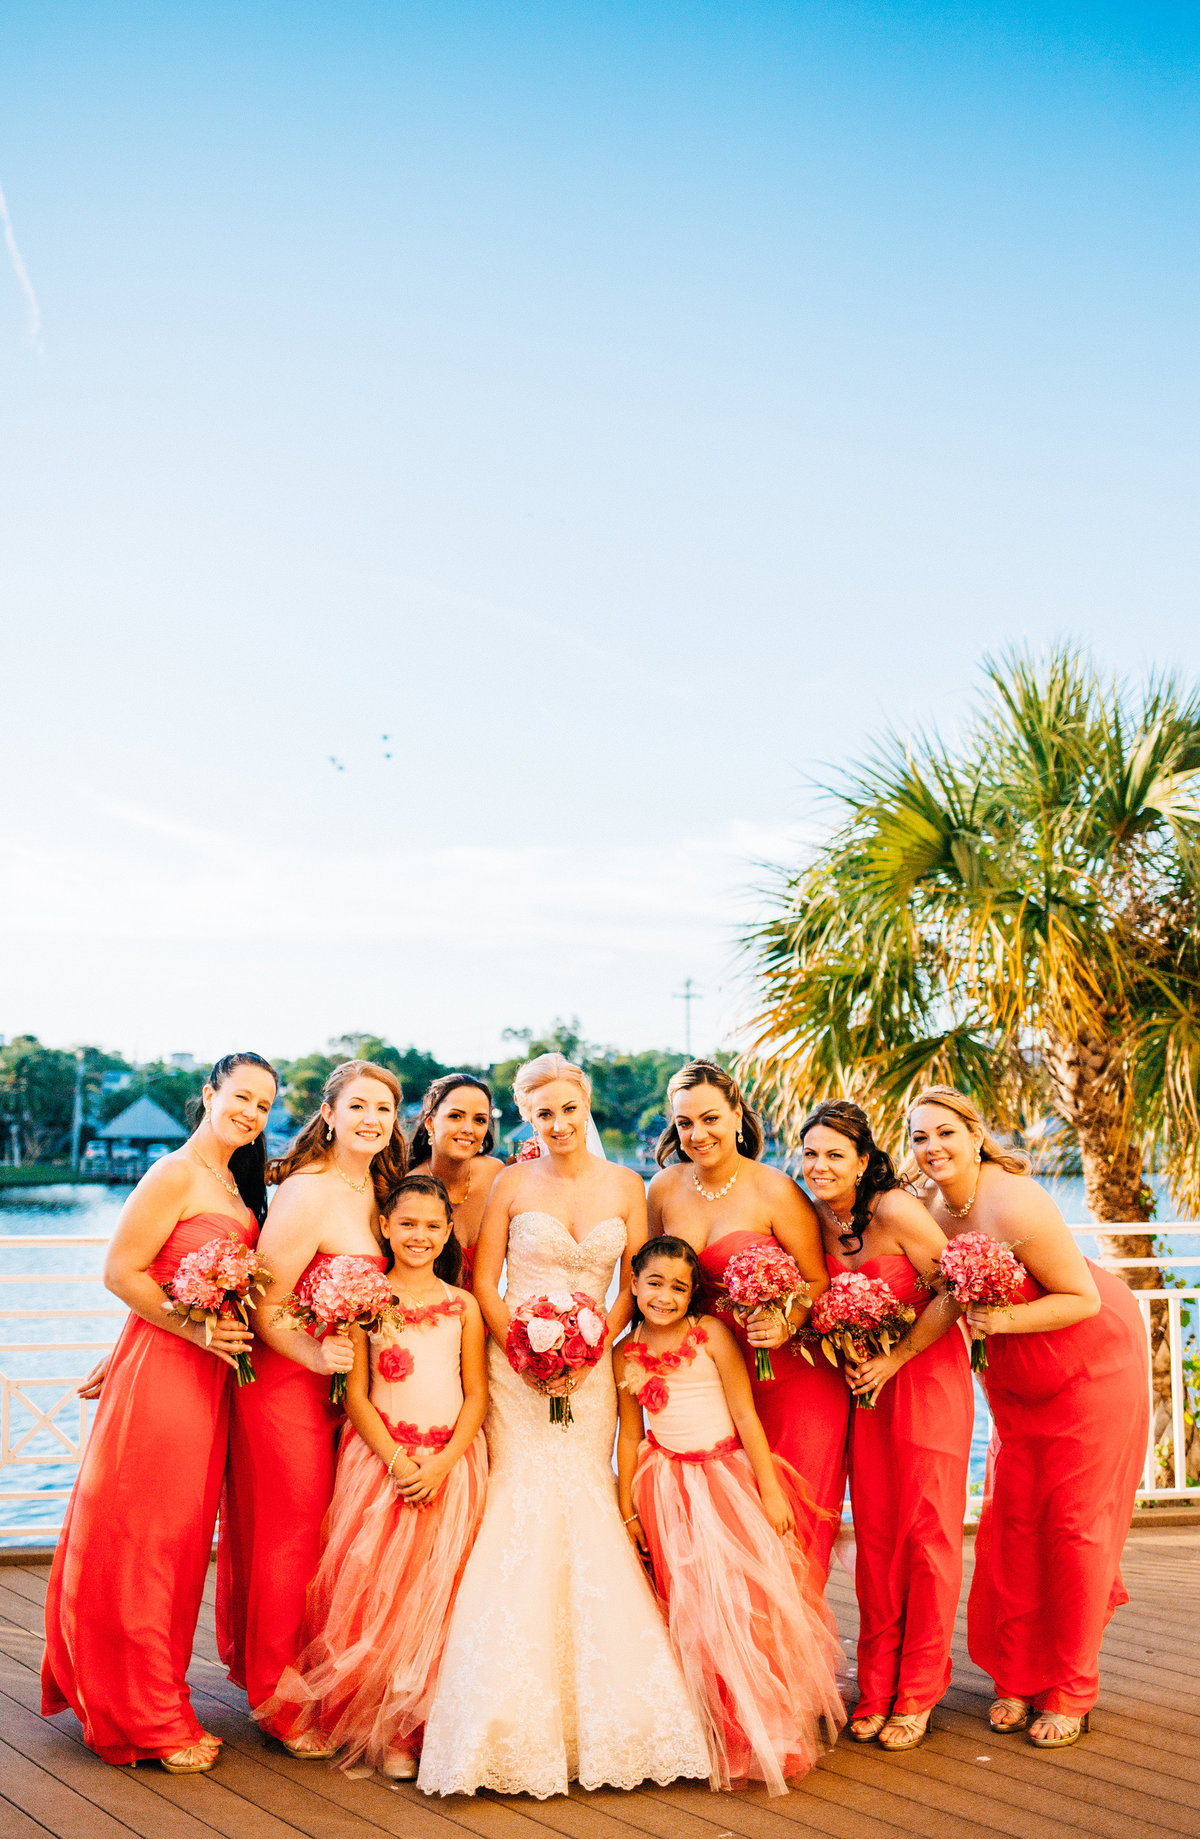 Kimberly_Hoyle_Photography_Milam_The_Back_Center_Melbourne_Wedding-45